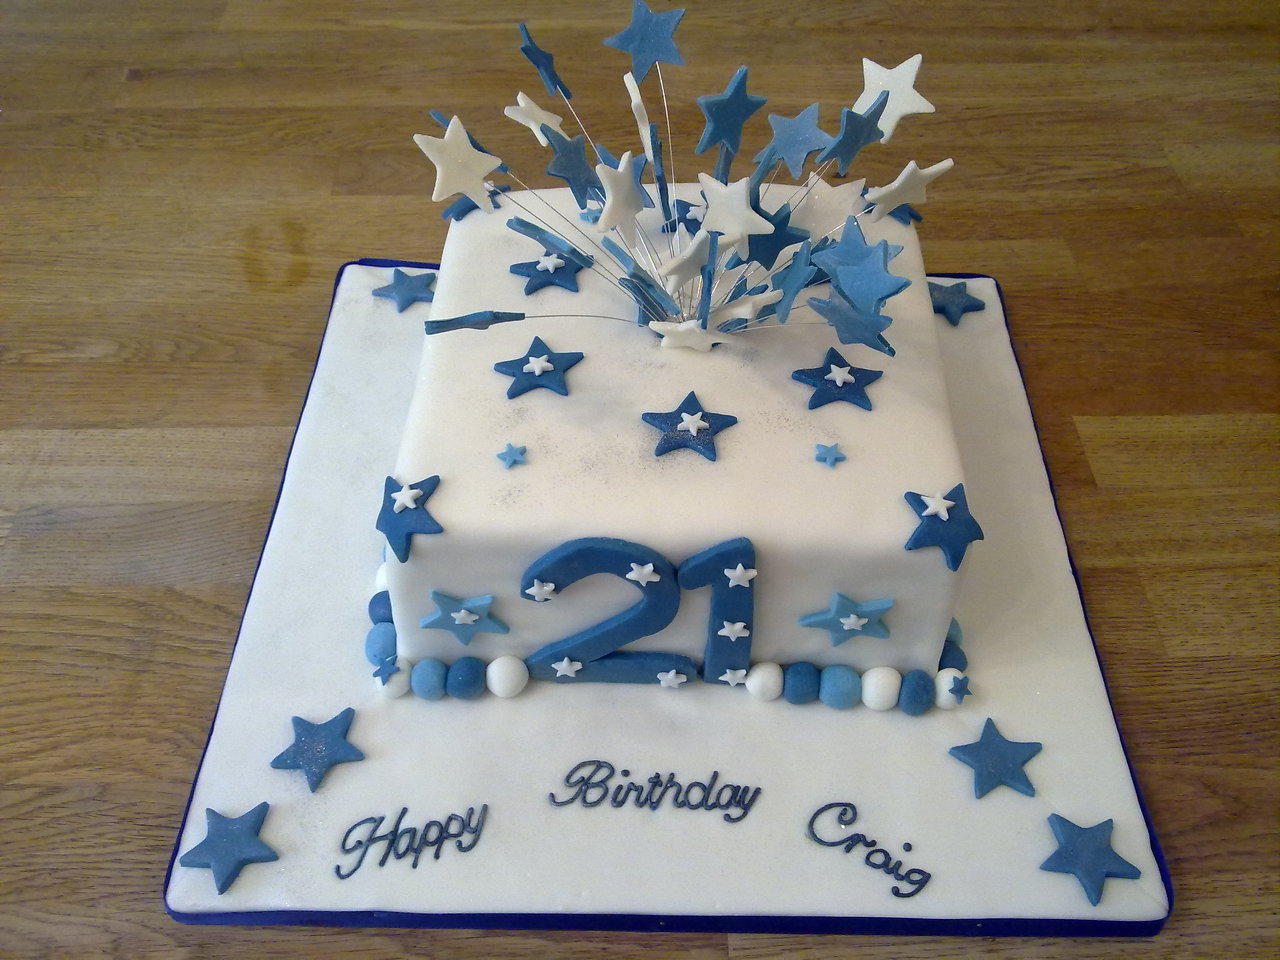 Birthday Cake For Him Images : 21st Birthday Cakes   Decoration Ideas Little Birthday Cakes